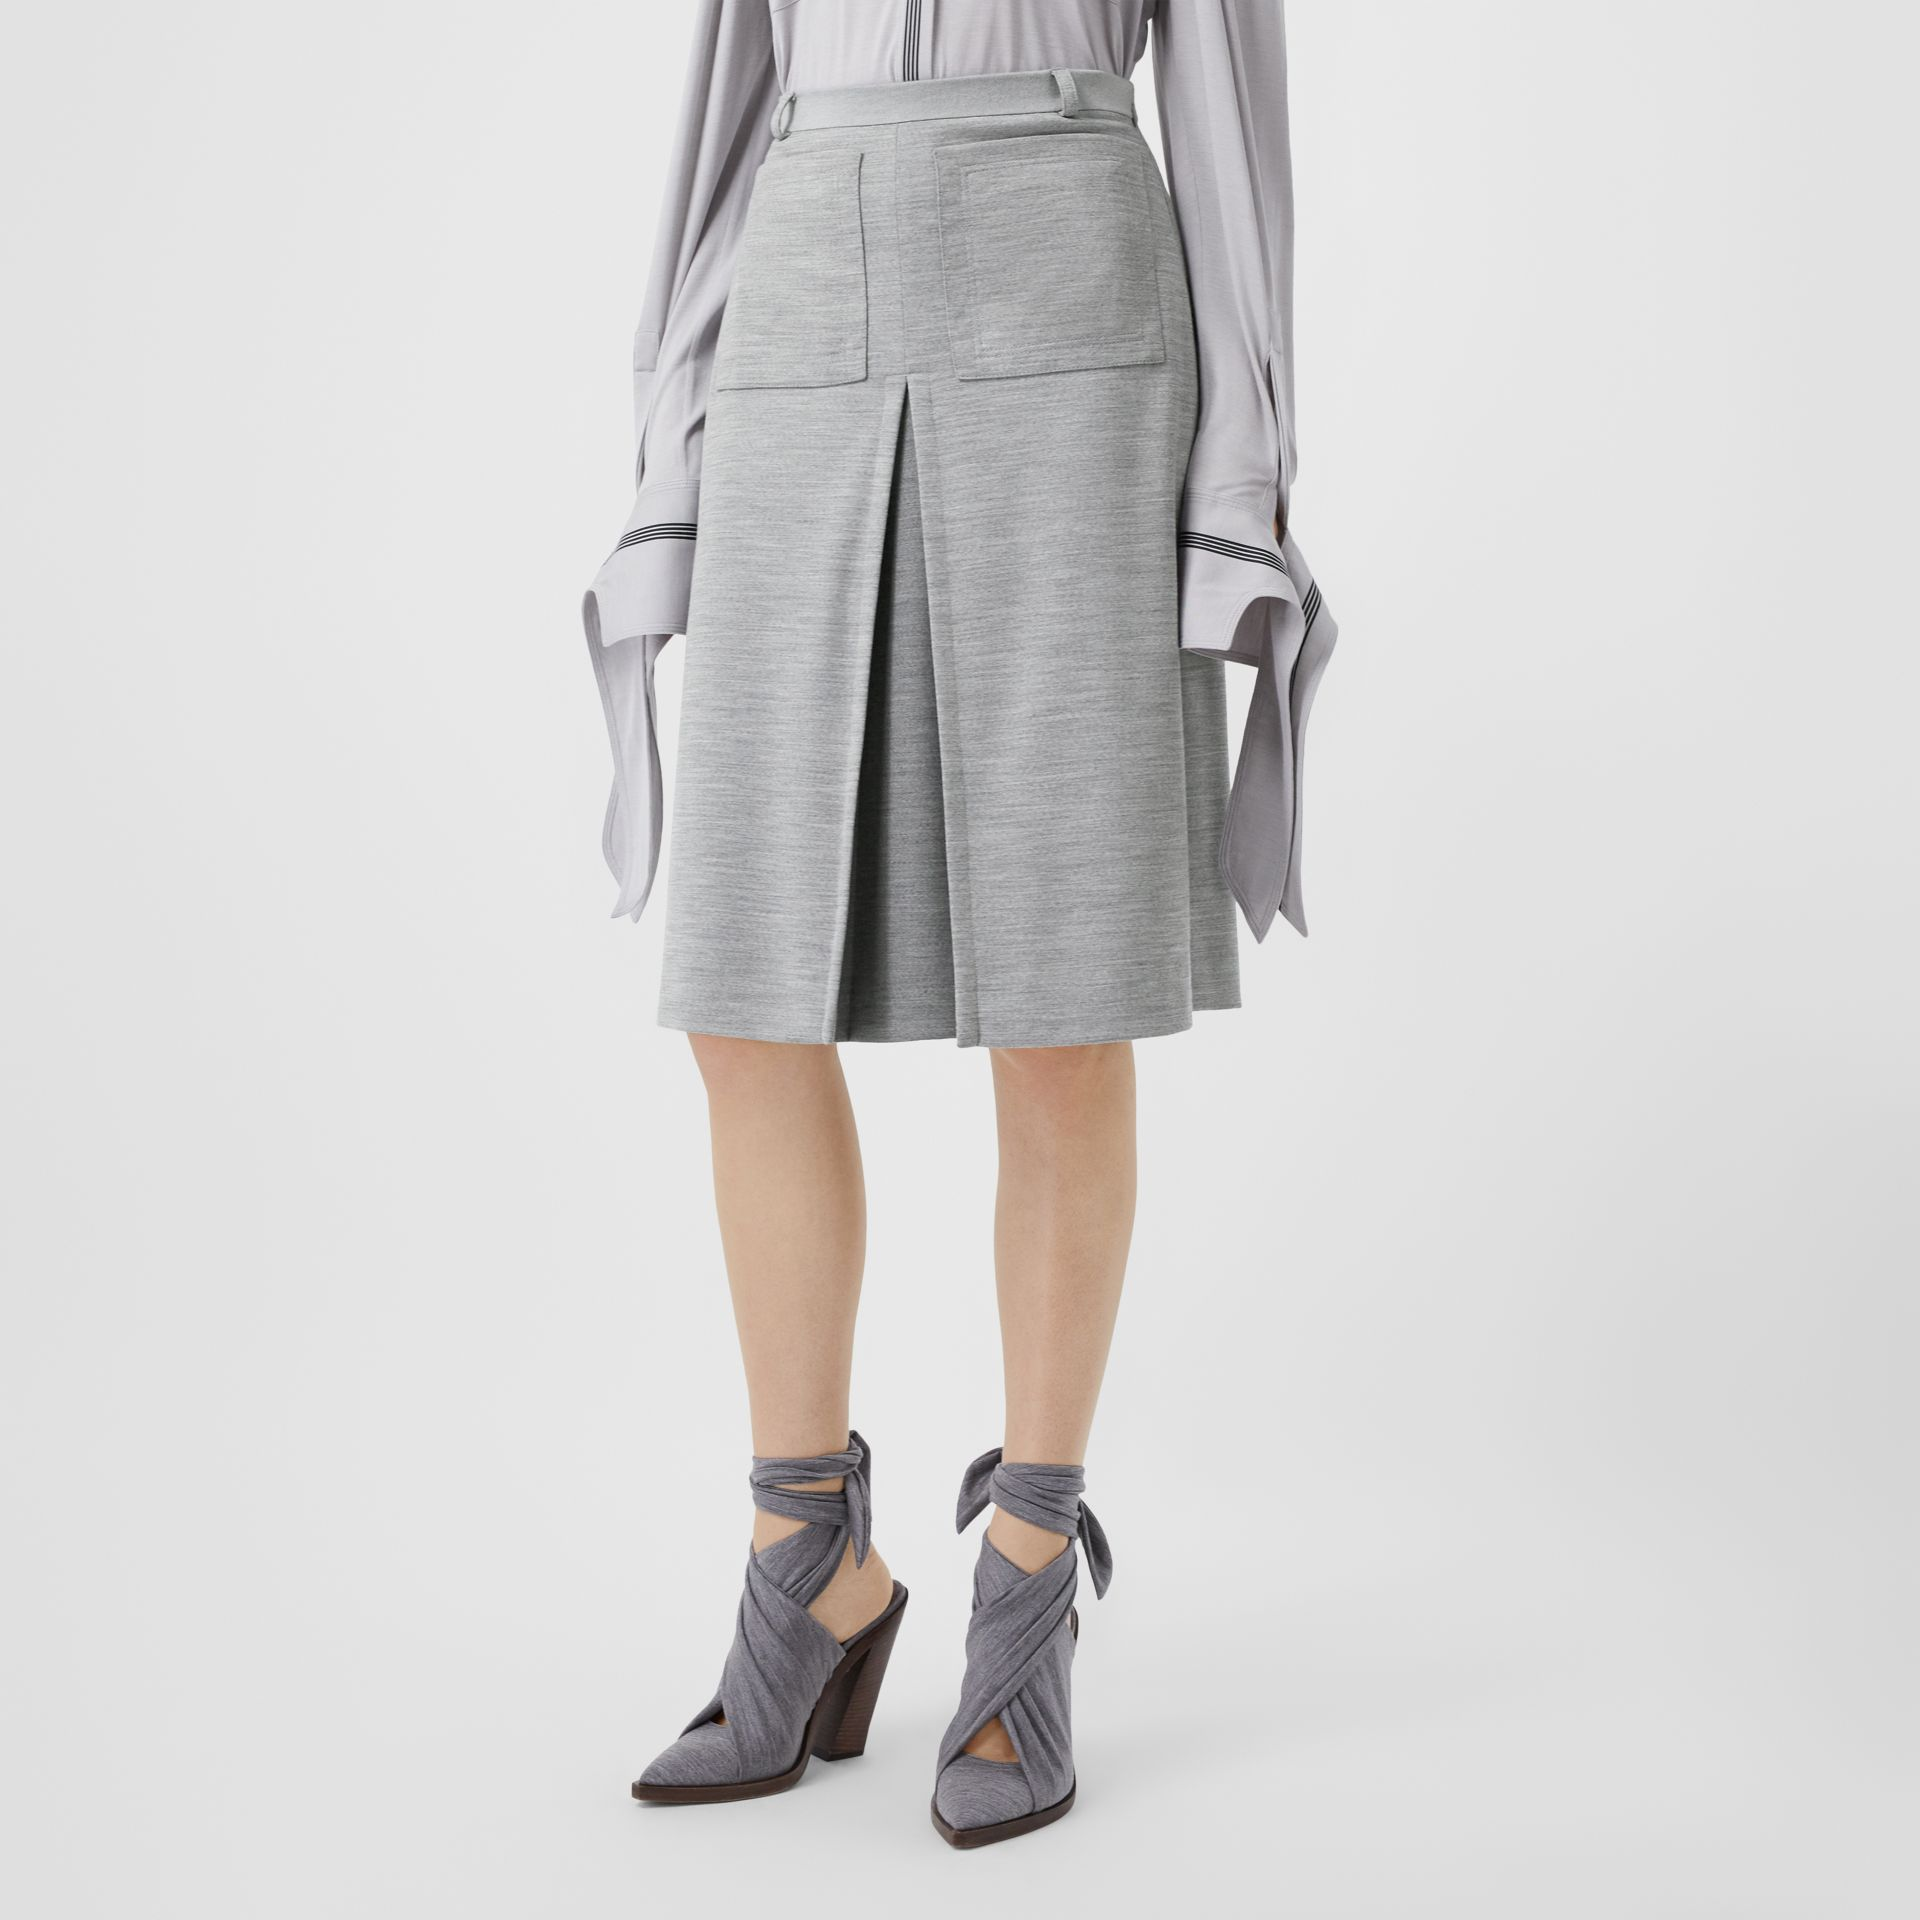 Box-pleat Detail Technical Wool Jersey A-line Skirt in Cloud Grey - Women | Burberry - gallery image 4